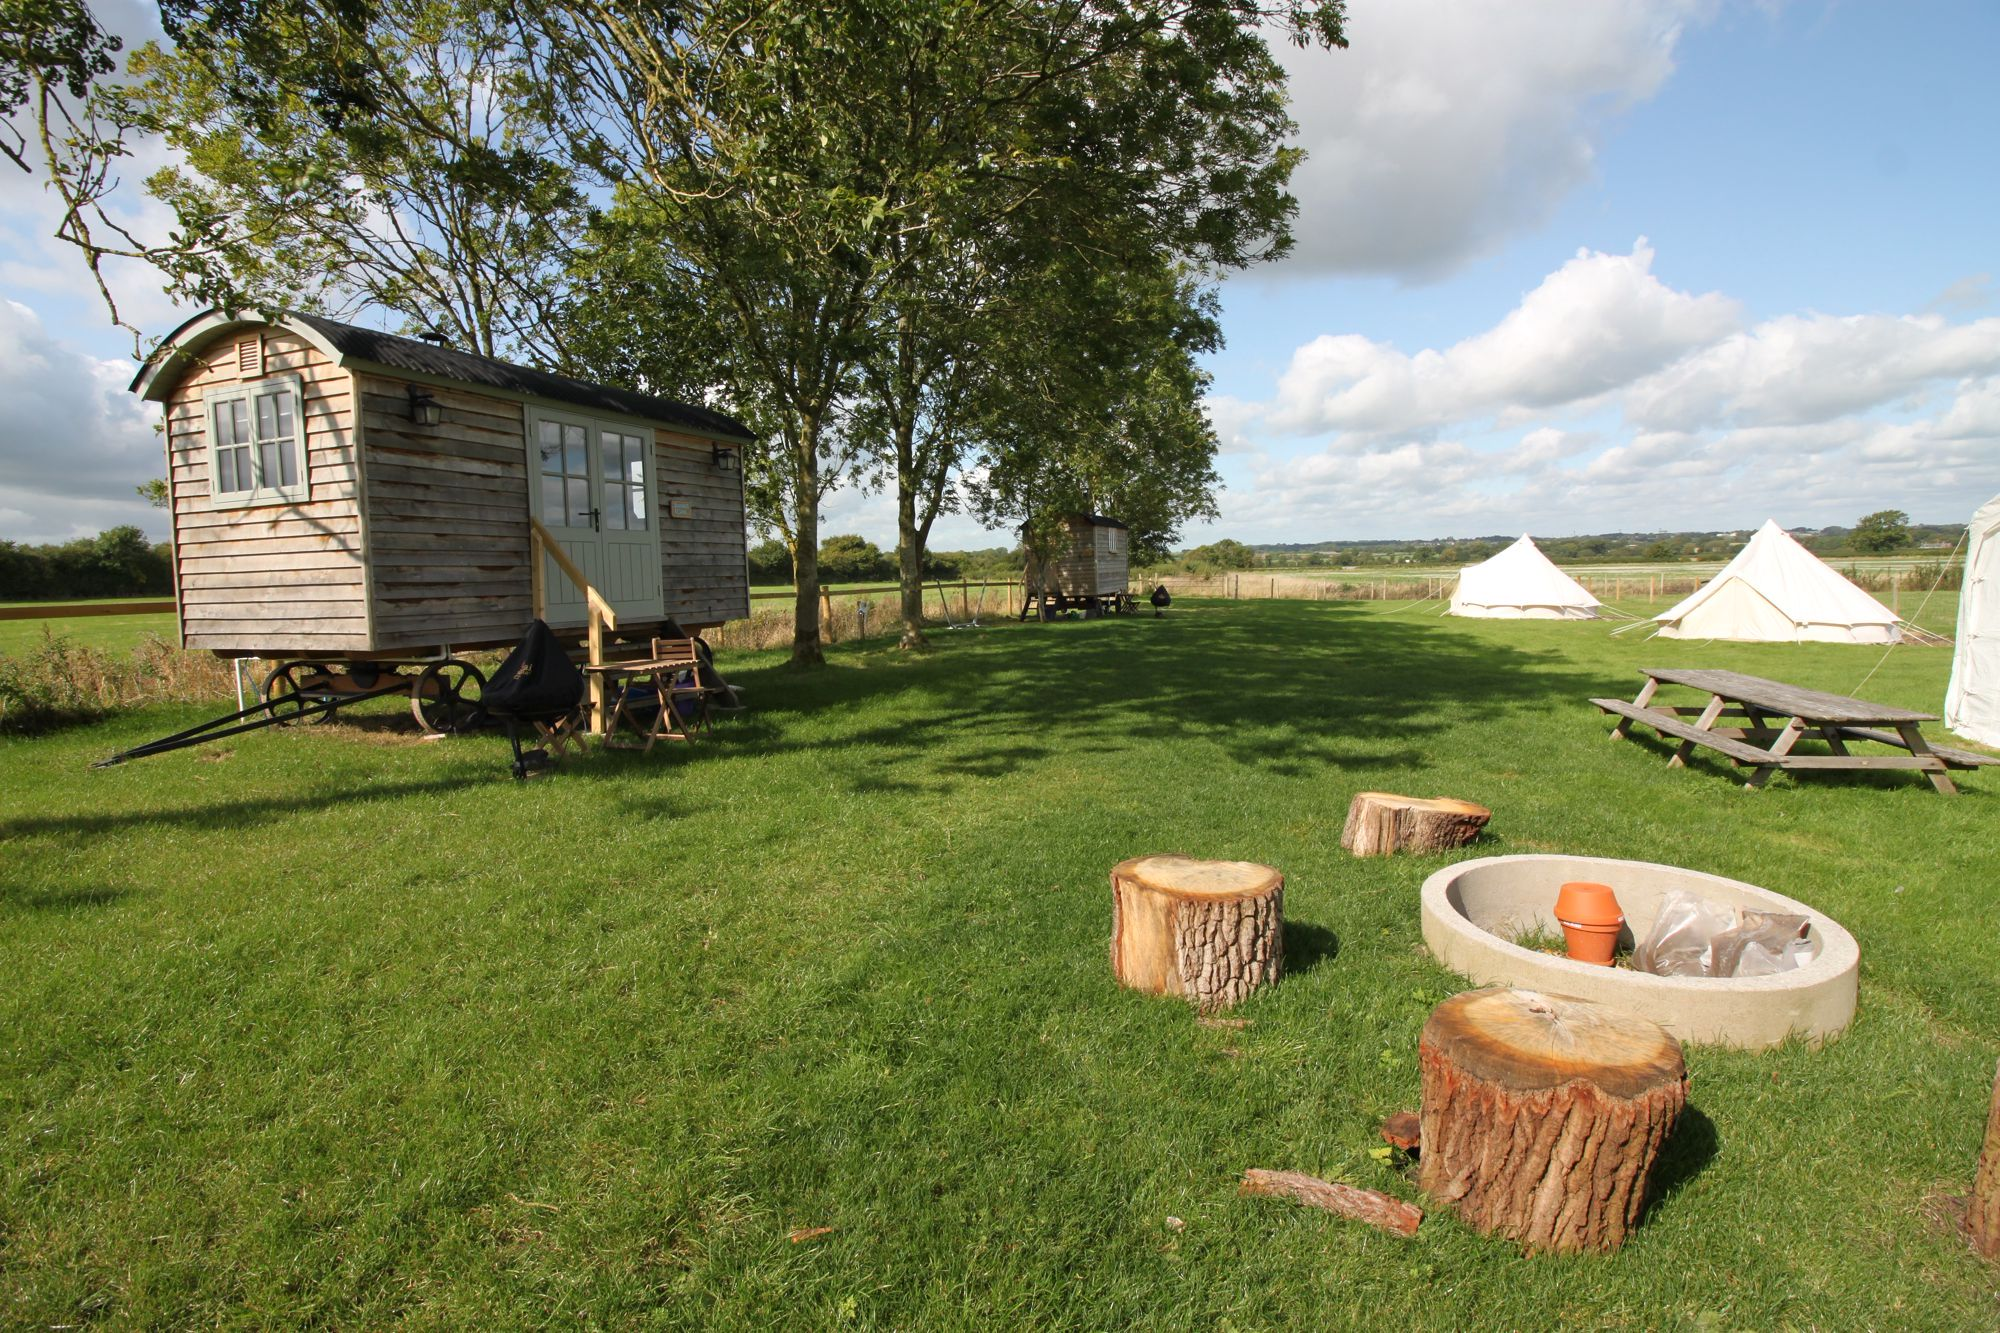 Glamping in the Wessex Downs Area of Outstanding Natural Beauty